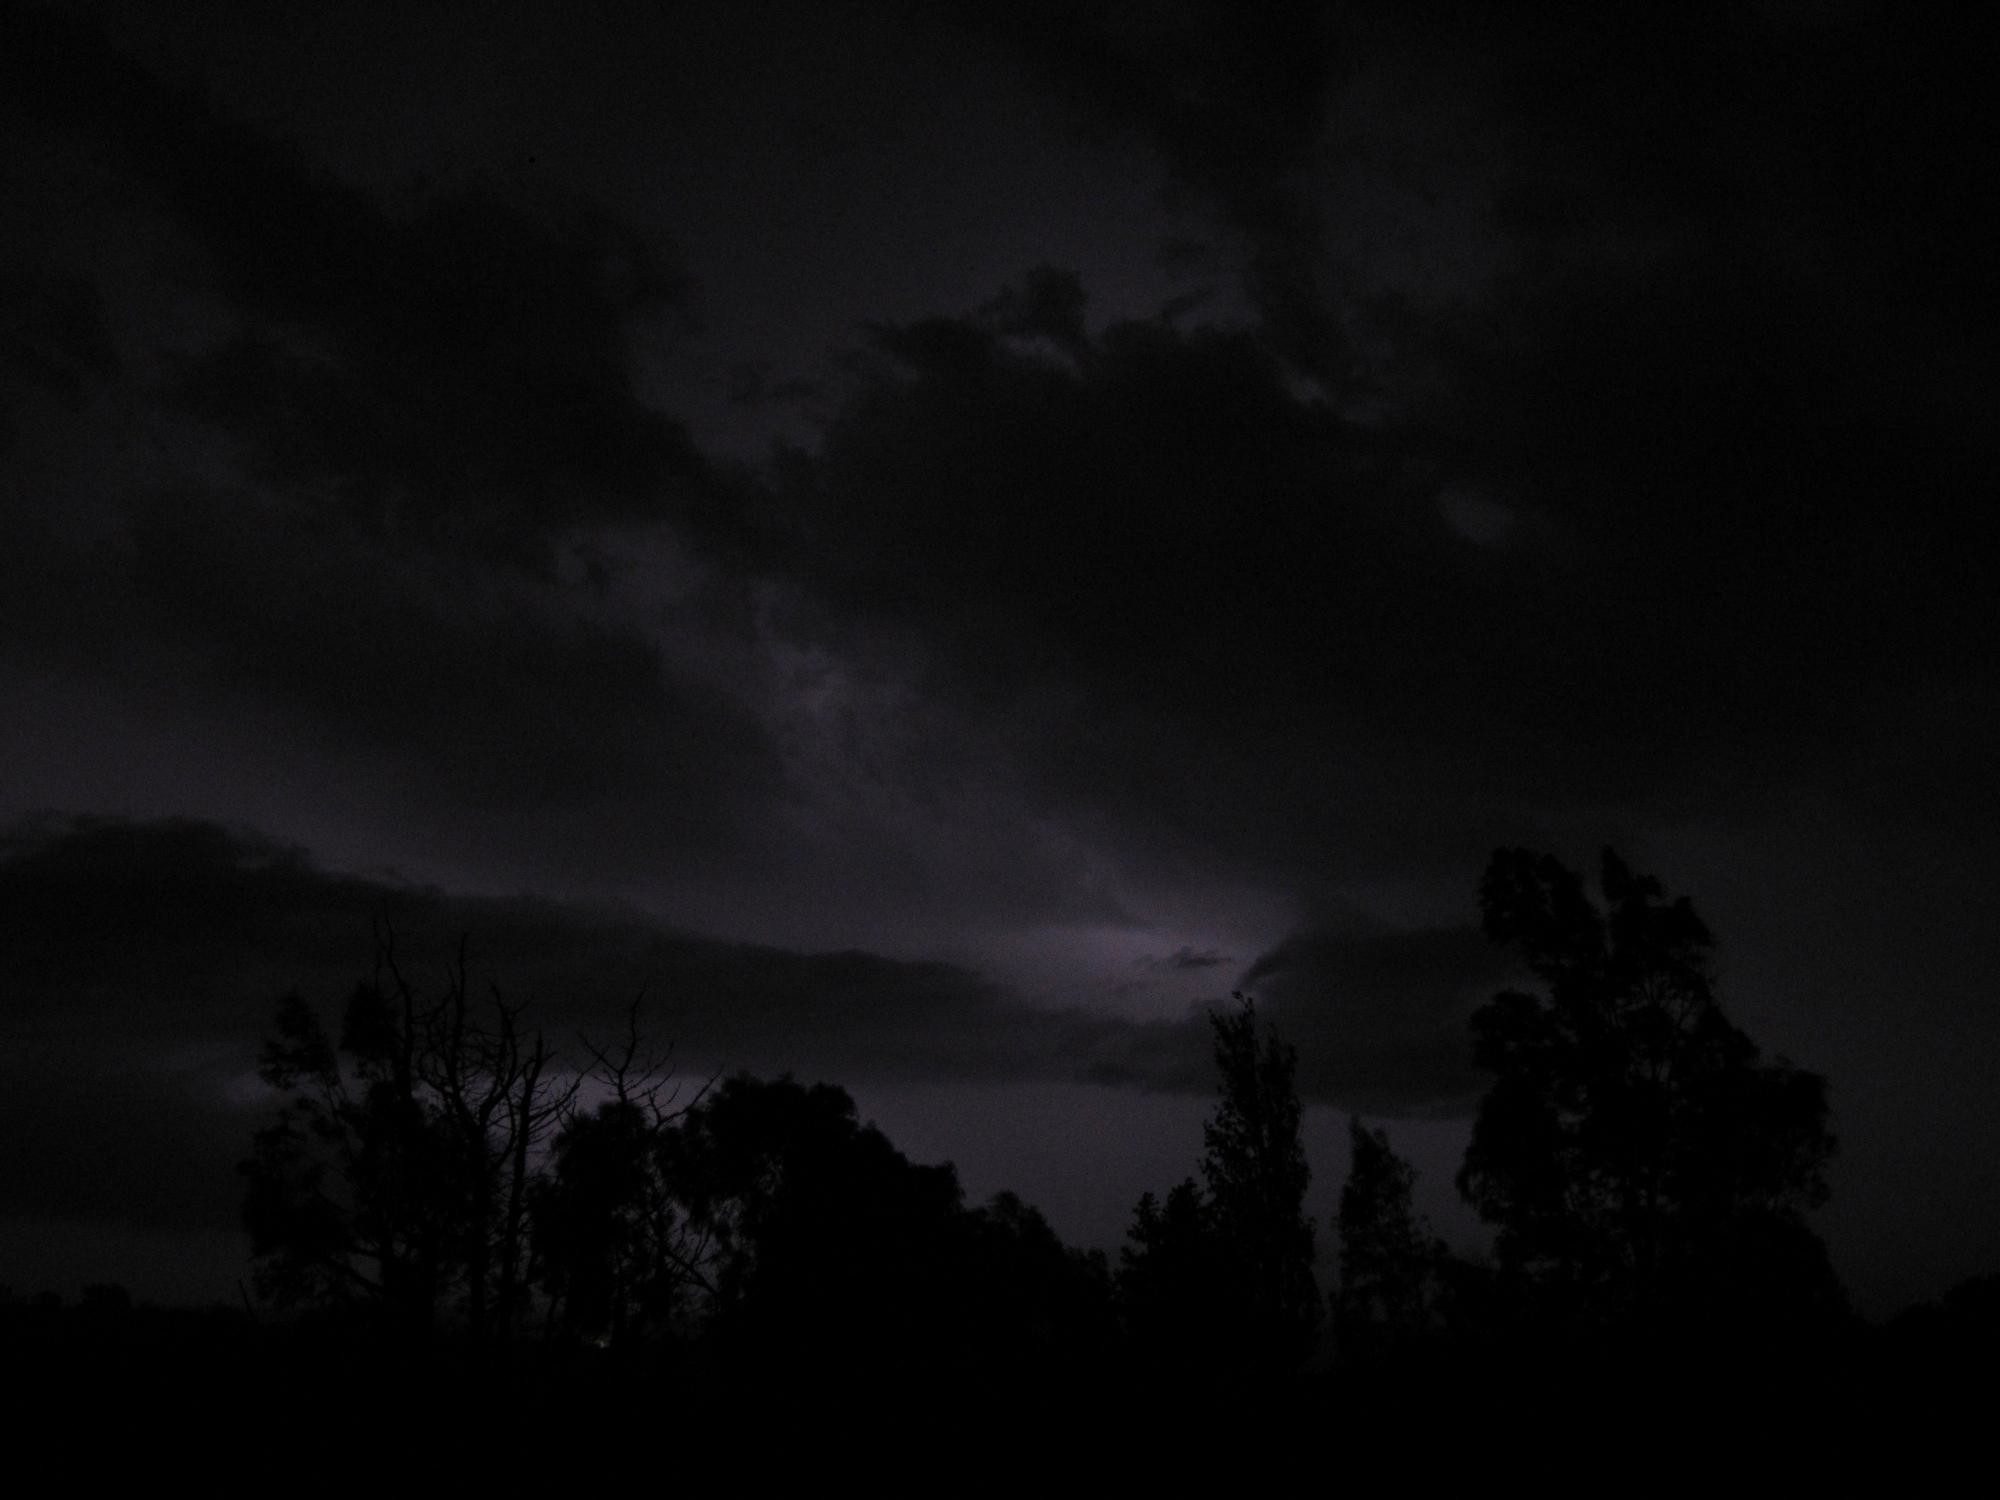 2000x1500 image Dark Stormy Night Sky PC, Android, iPhone and iPad. Wallpapers .